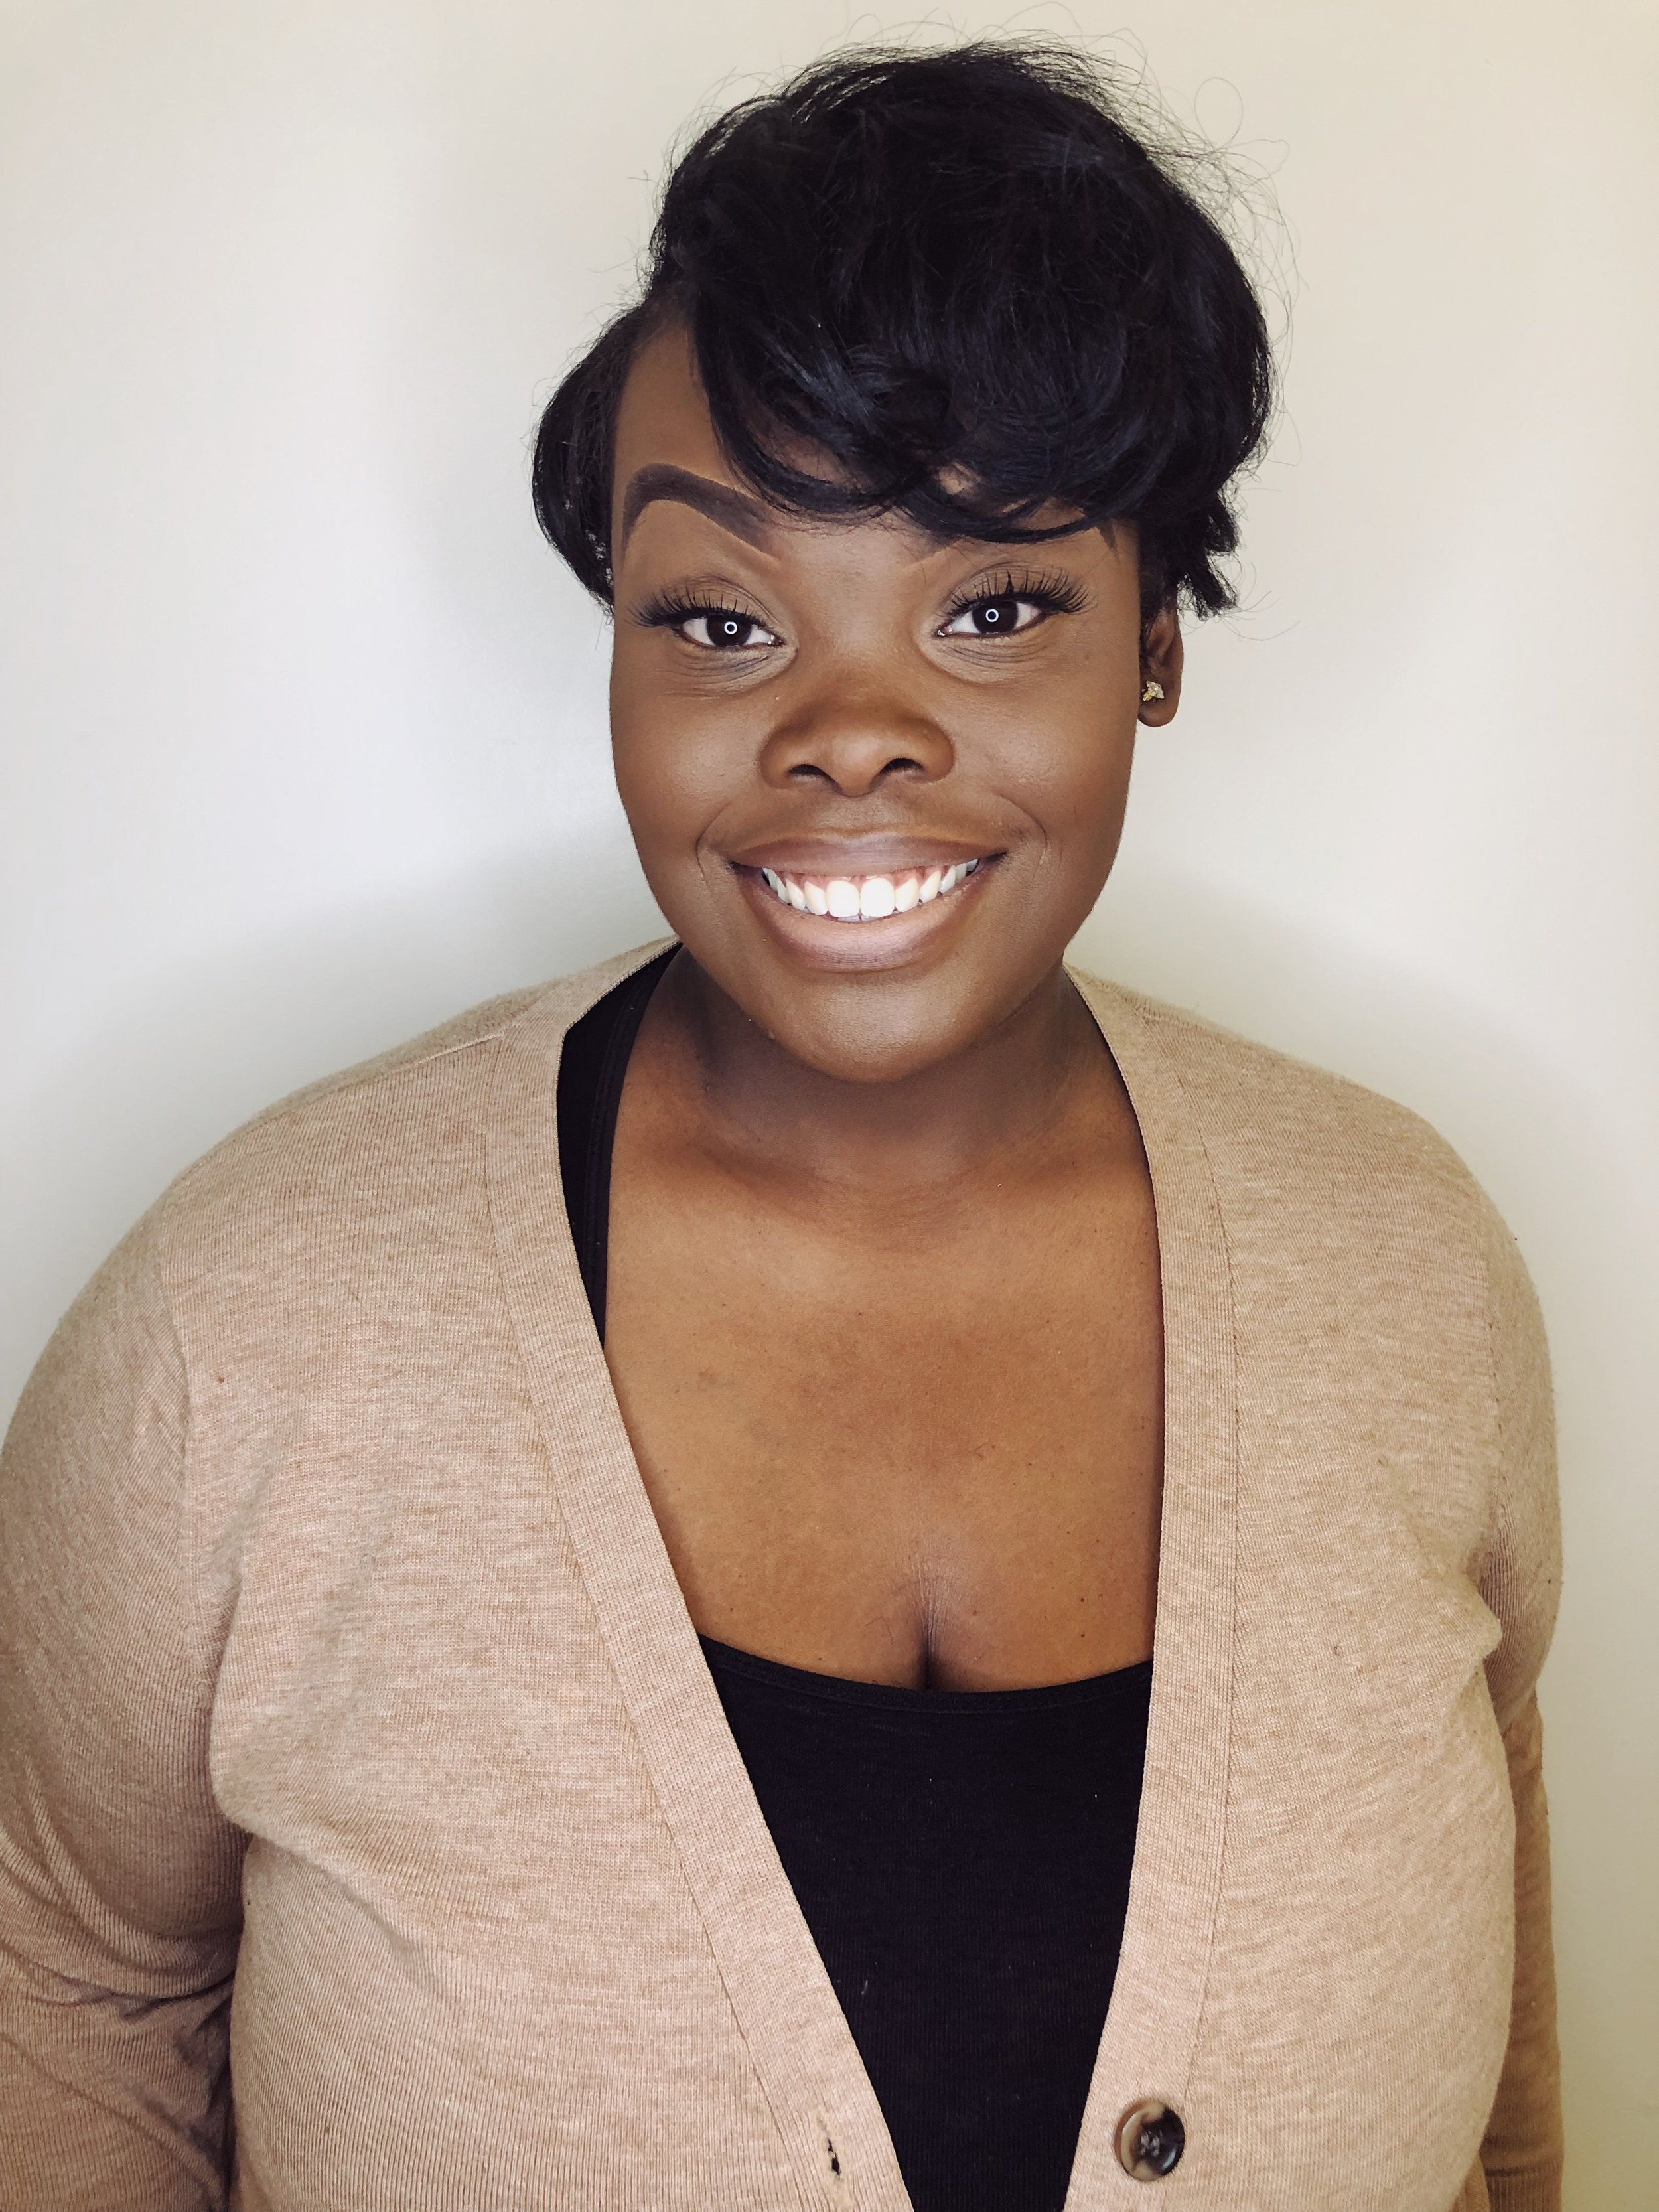 SHINNIKA C.HAIRSTYLIST - Education: Marca College5+years experience in braiding and weave sewins. Shinnika is passionate about natural hair care and strives to ensure each client understands and how to manage and maintain their hair. Creating a fun and inviting atmosphere is what she's about!IG: @neekah.lee